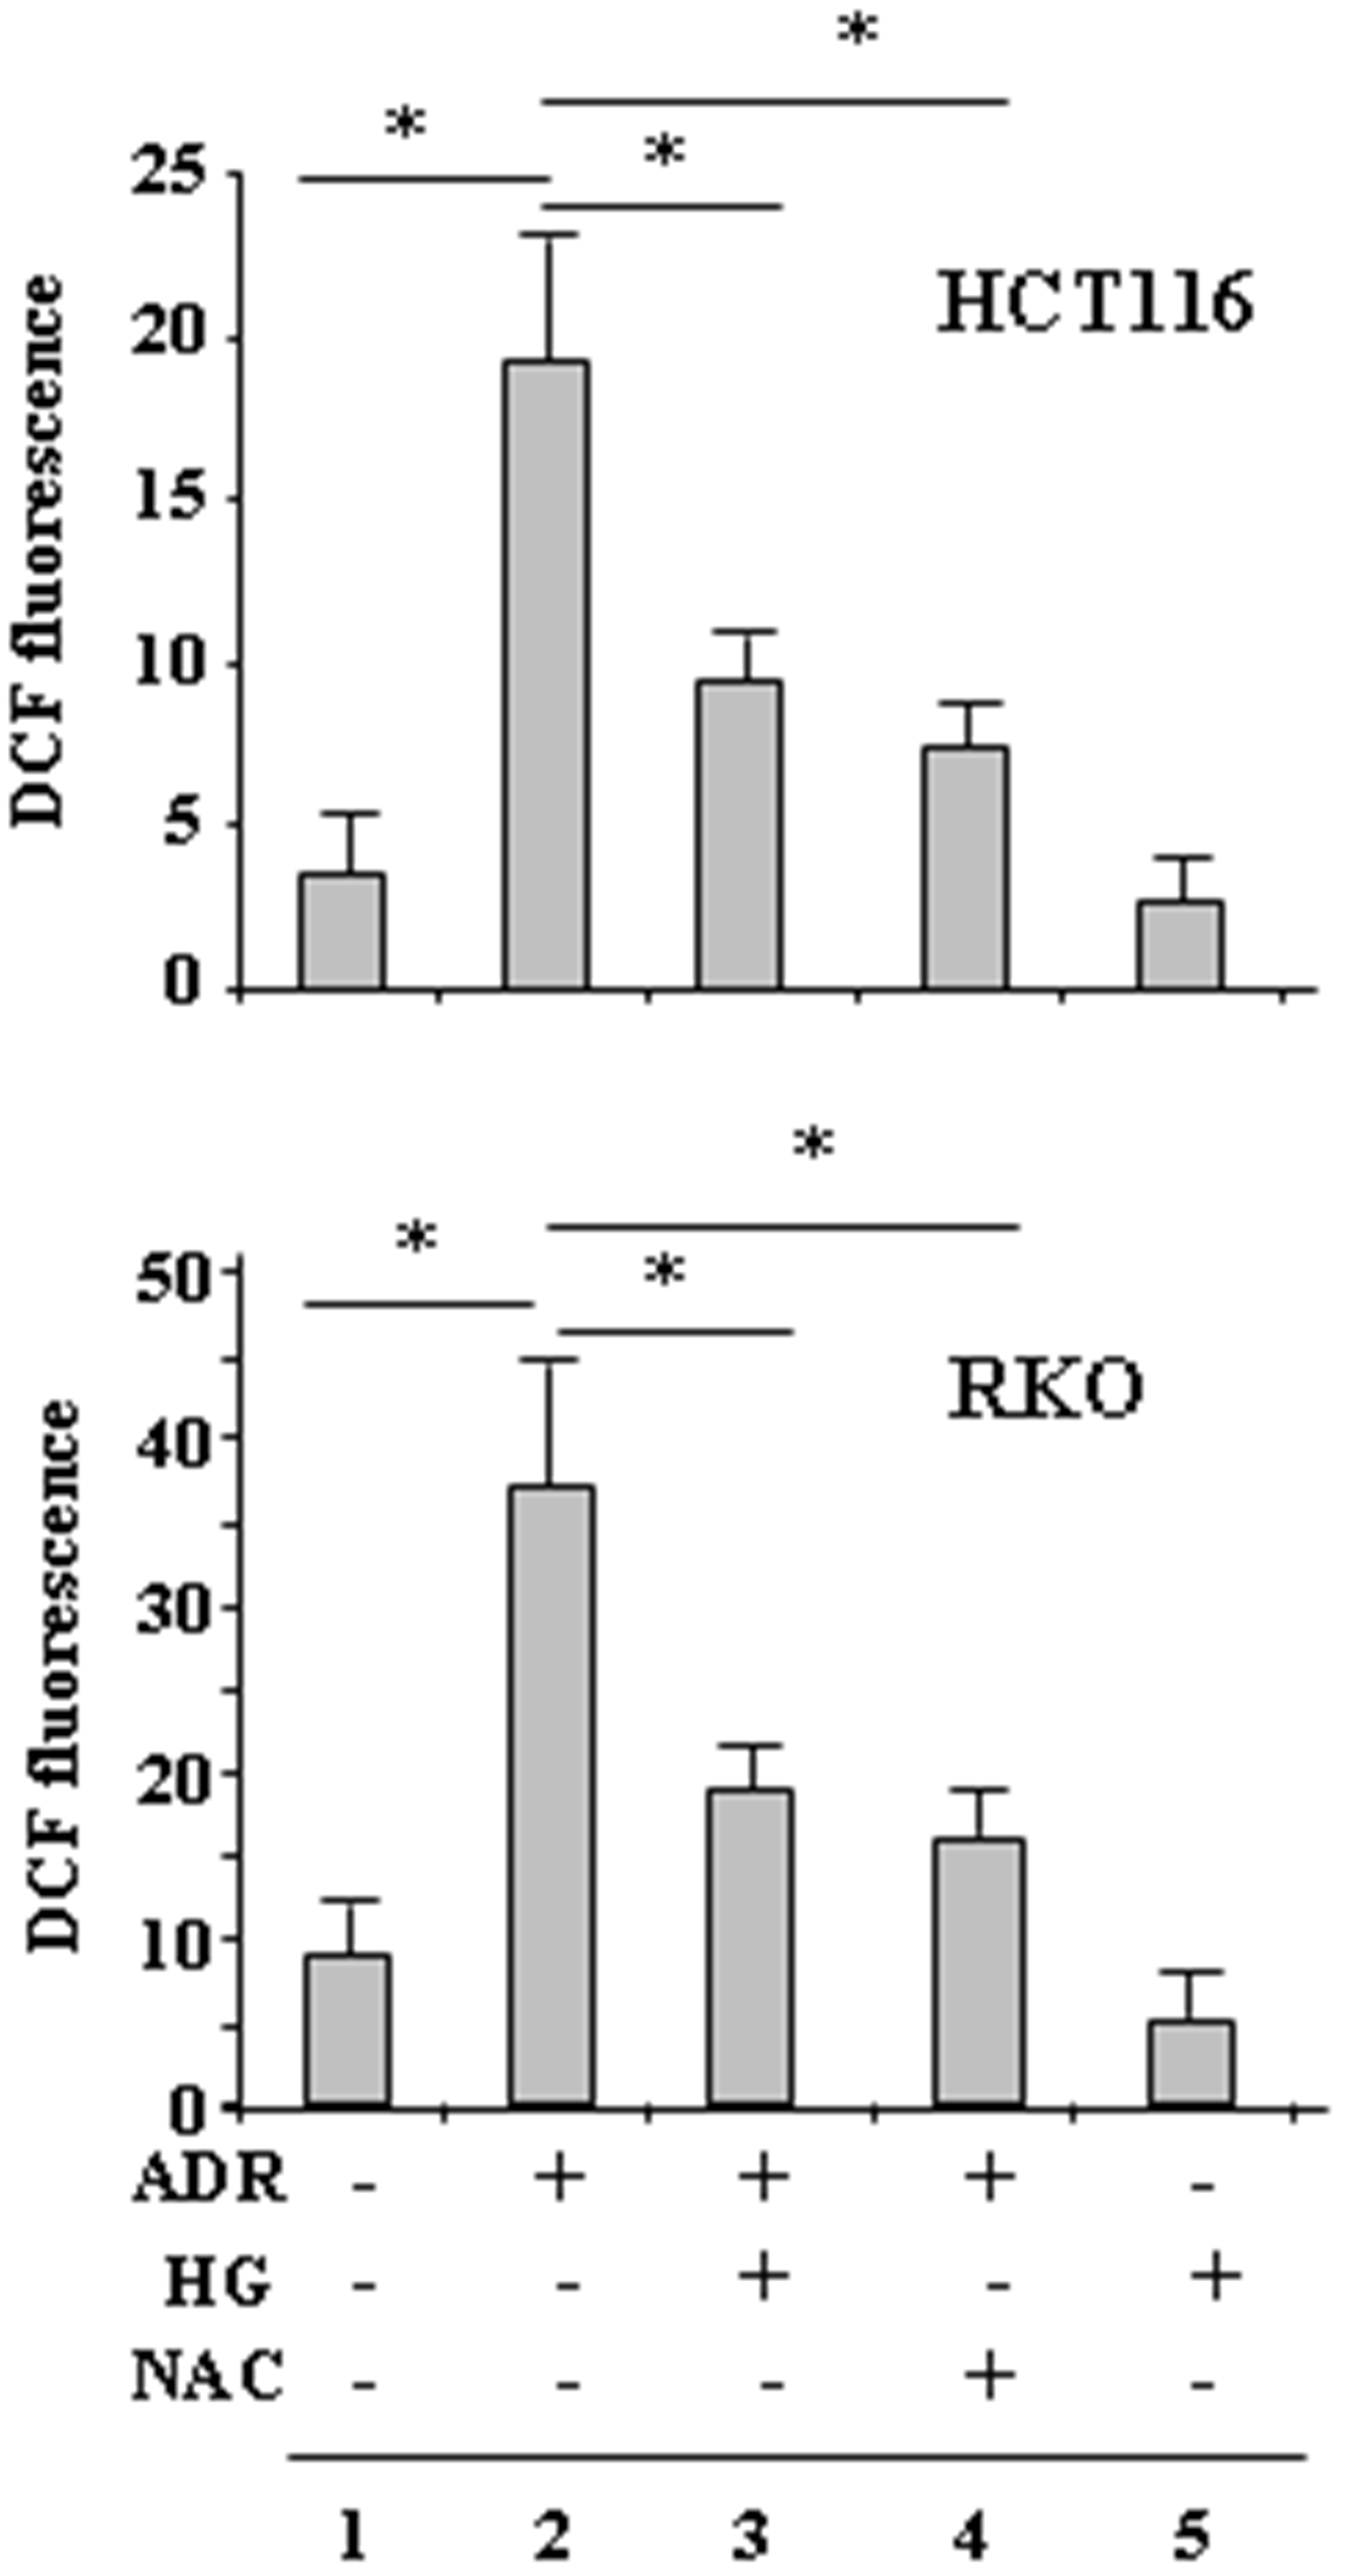 HG reduces ADR-induced ROS generation.